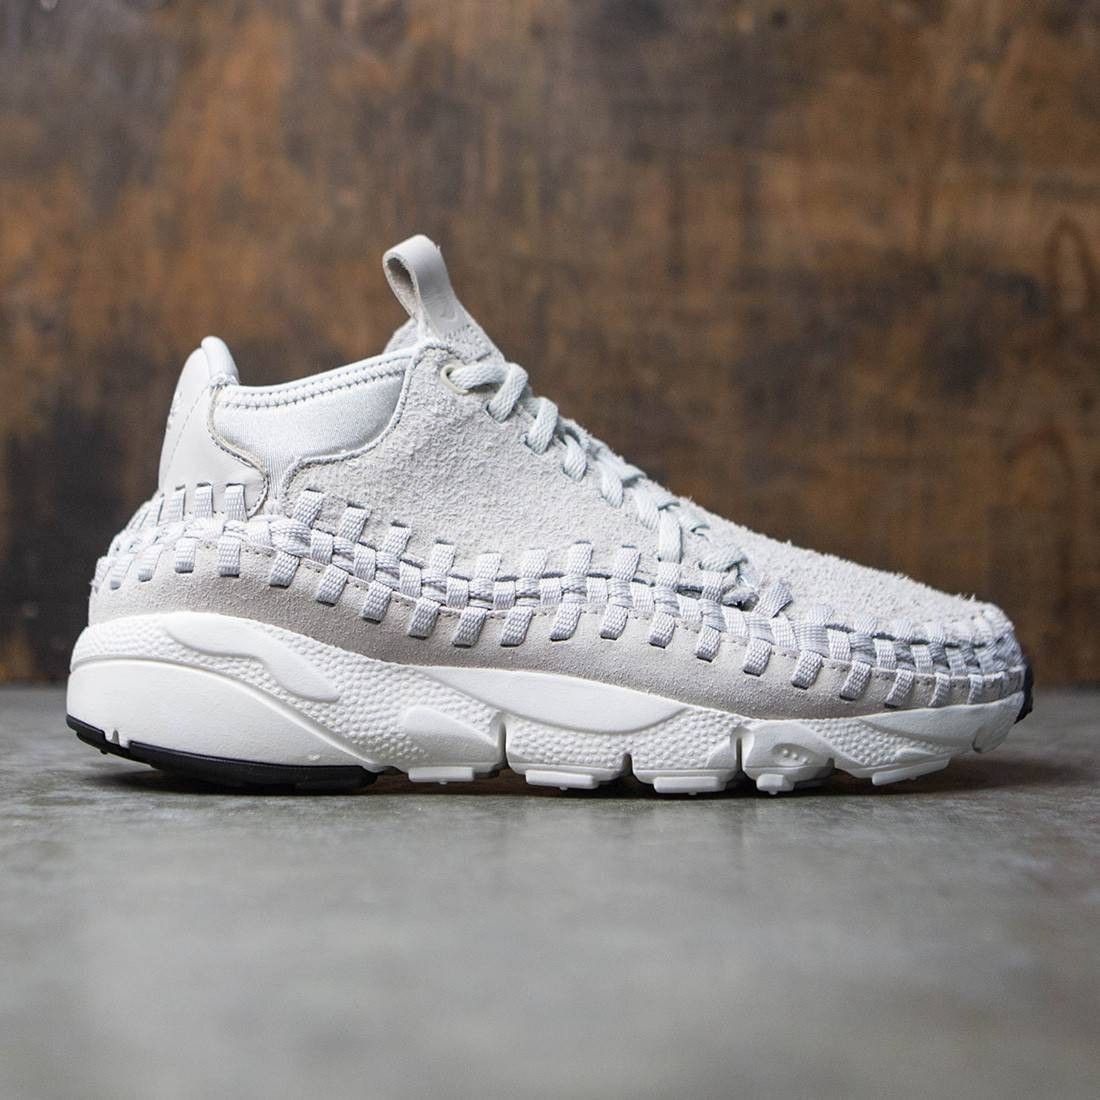 light bonesummit white) is part of Nike - The Nike Air Footscape Woven Chukka QS Men's Shoe features a midcut design with a striking woven upper and deep flex grooves for a premium look and natural movement Combination upper for a premium feelPhylon midsol